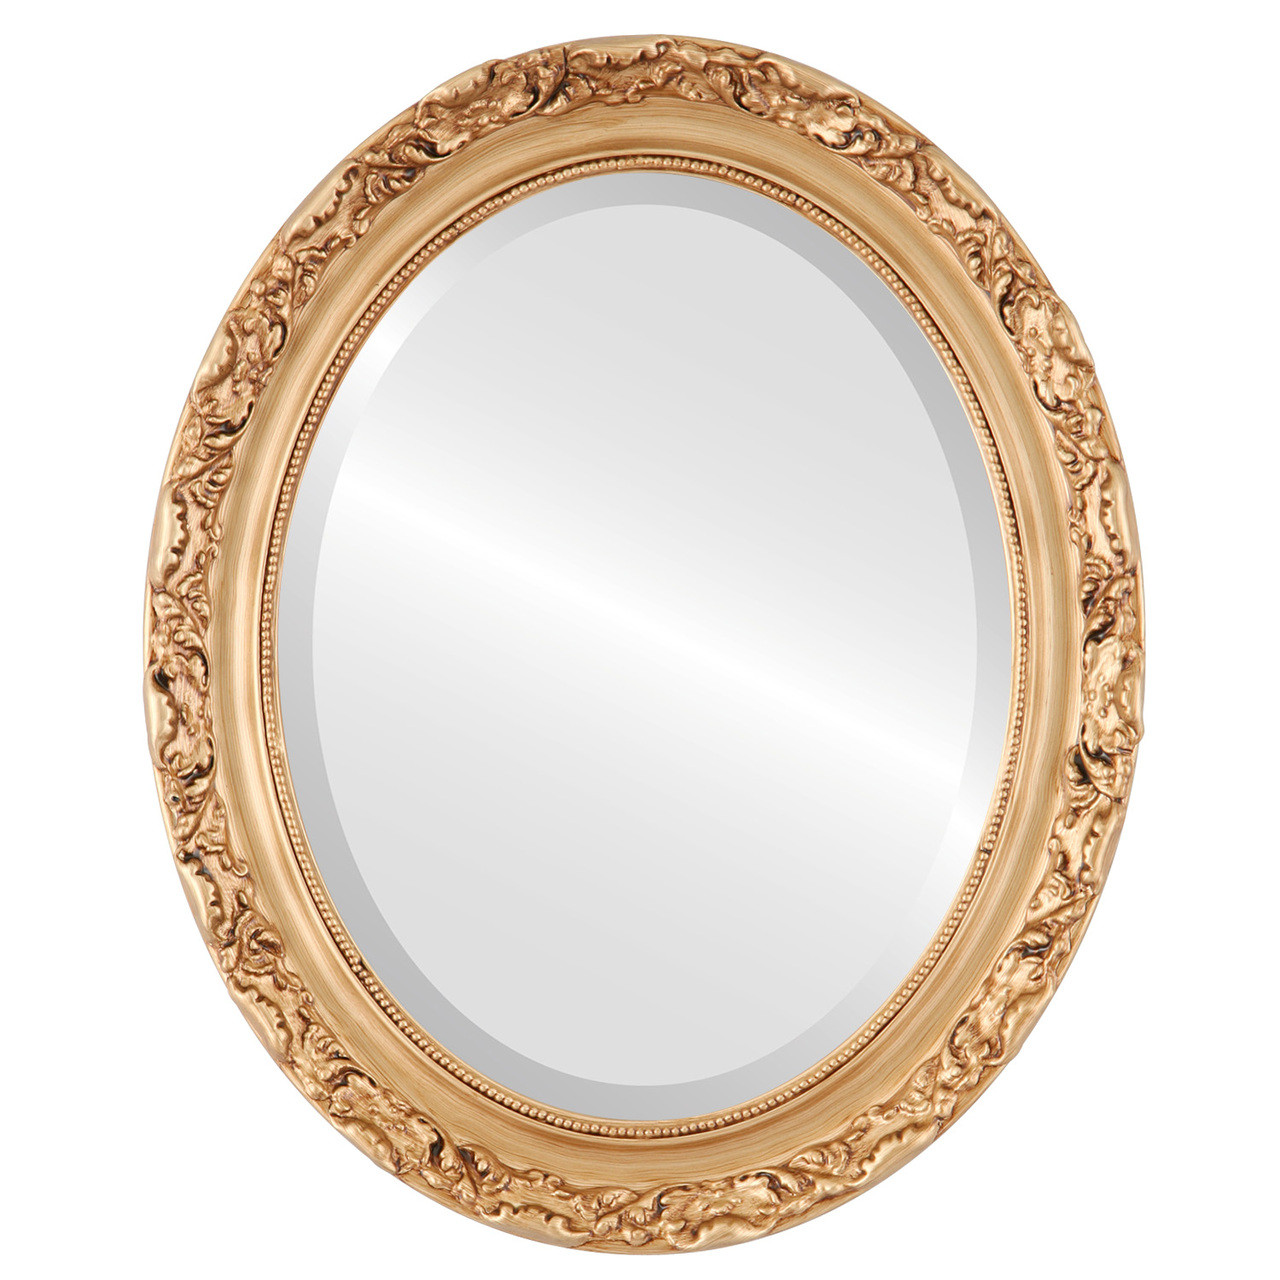 Vintage Gold Oval Mirrors from $146 | Free Shipping